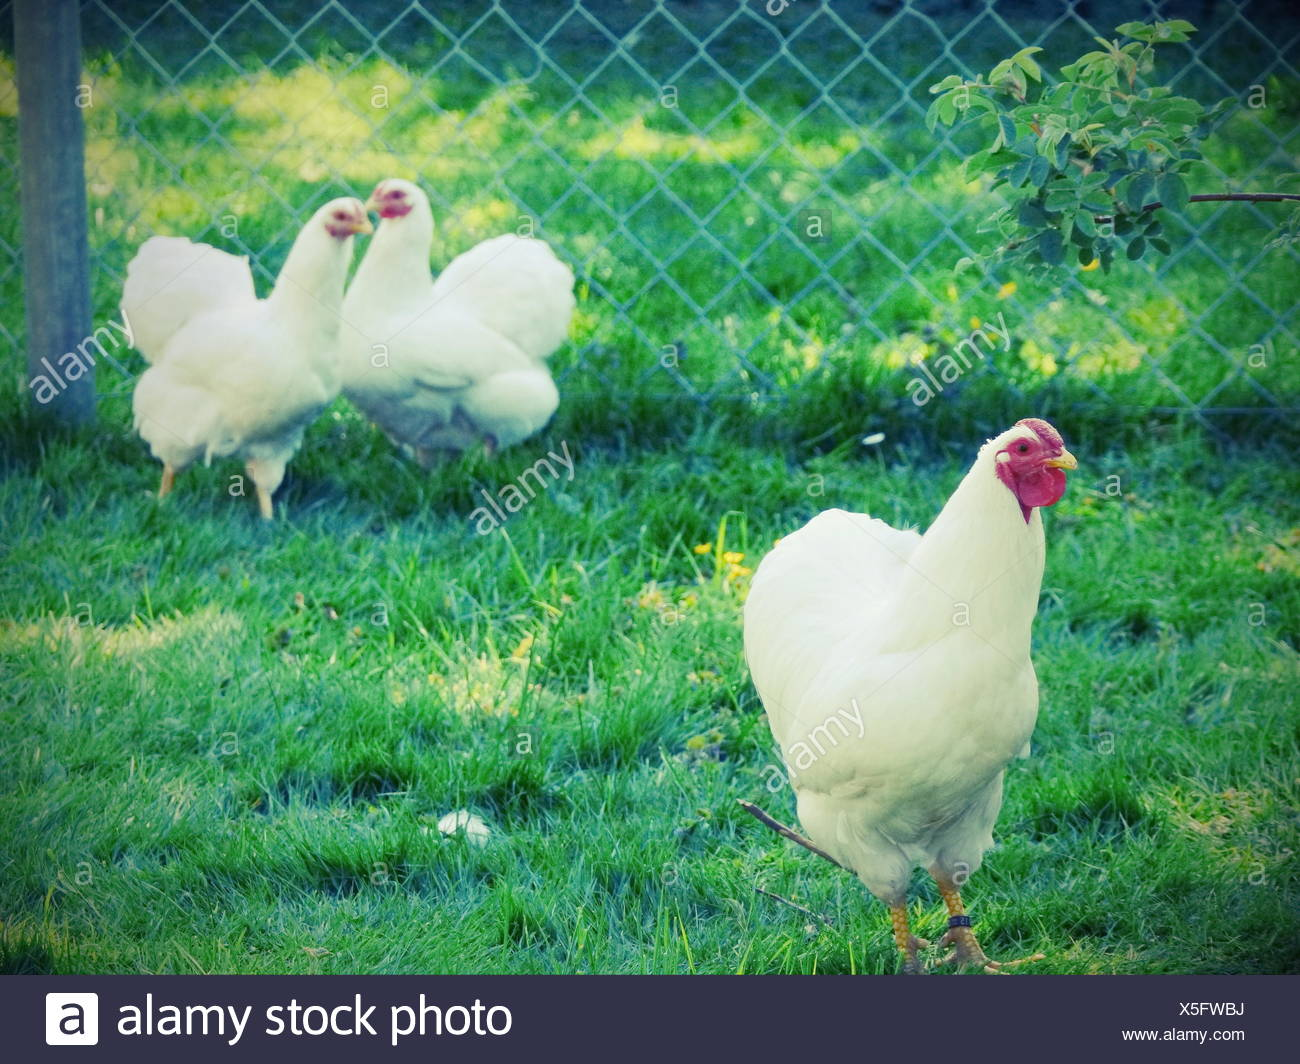 Hens On Green Field - Stock Image